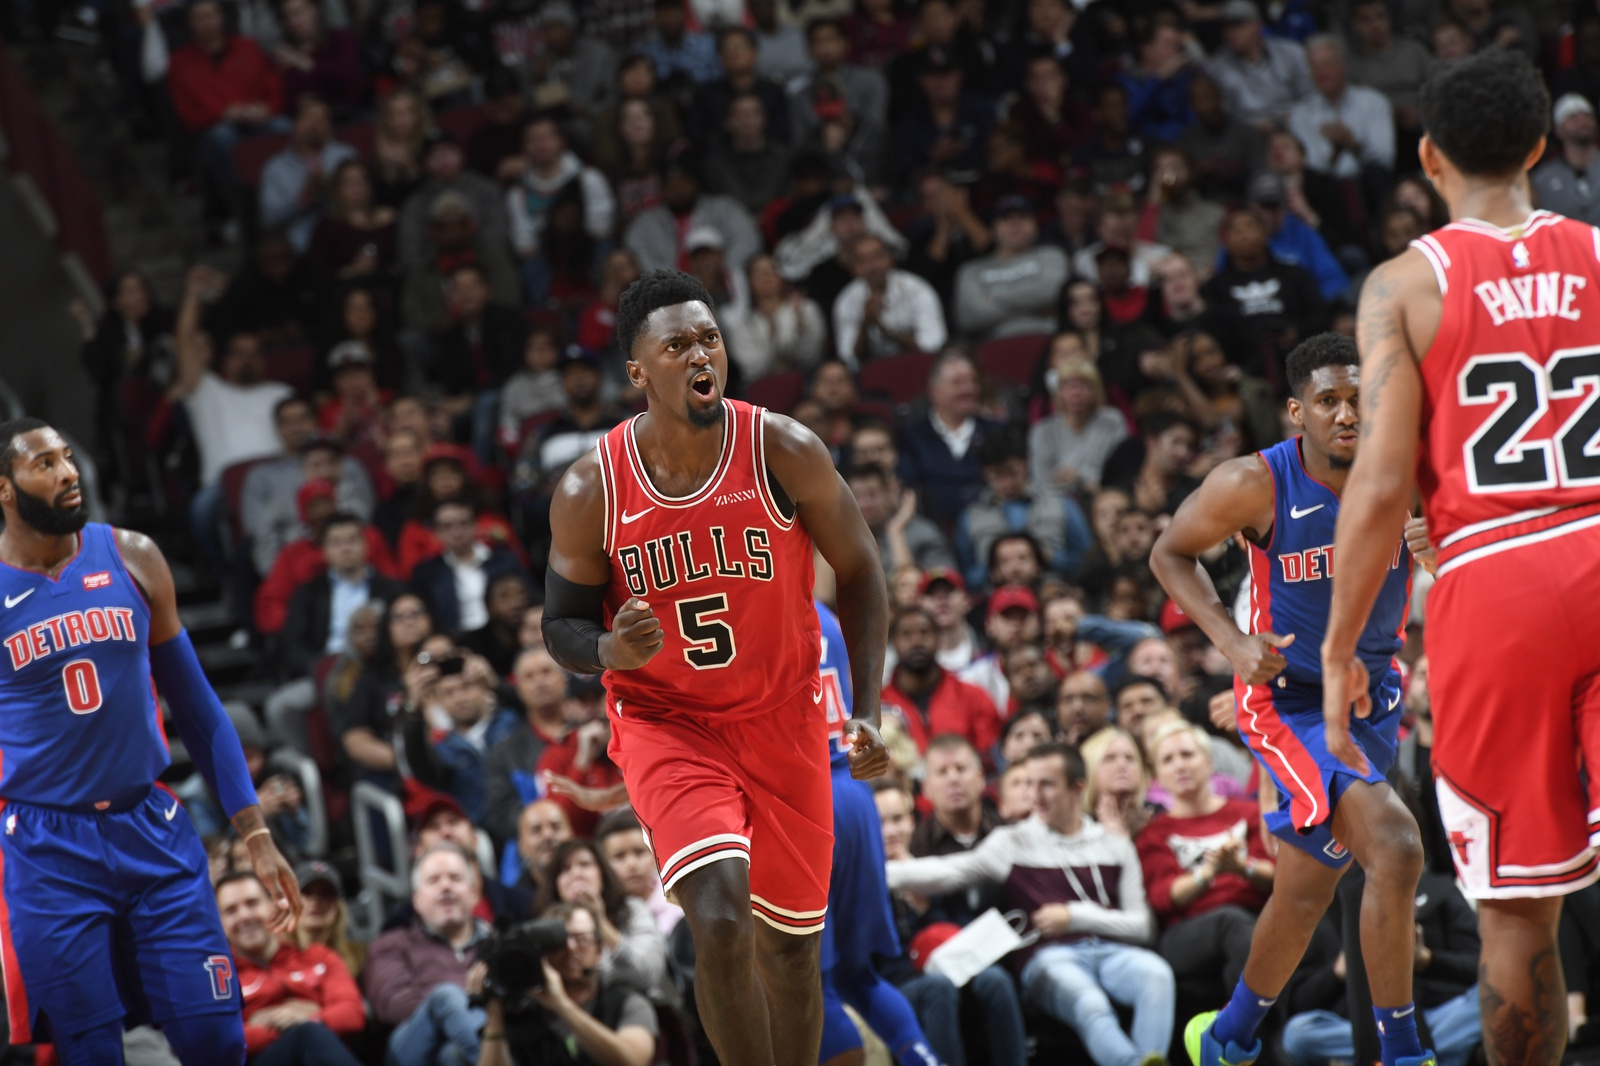 Bobby Portis celebrates after making a play in a game against the Detroit Pistons.